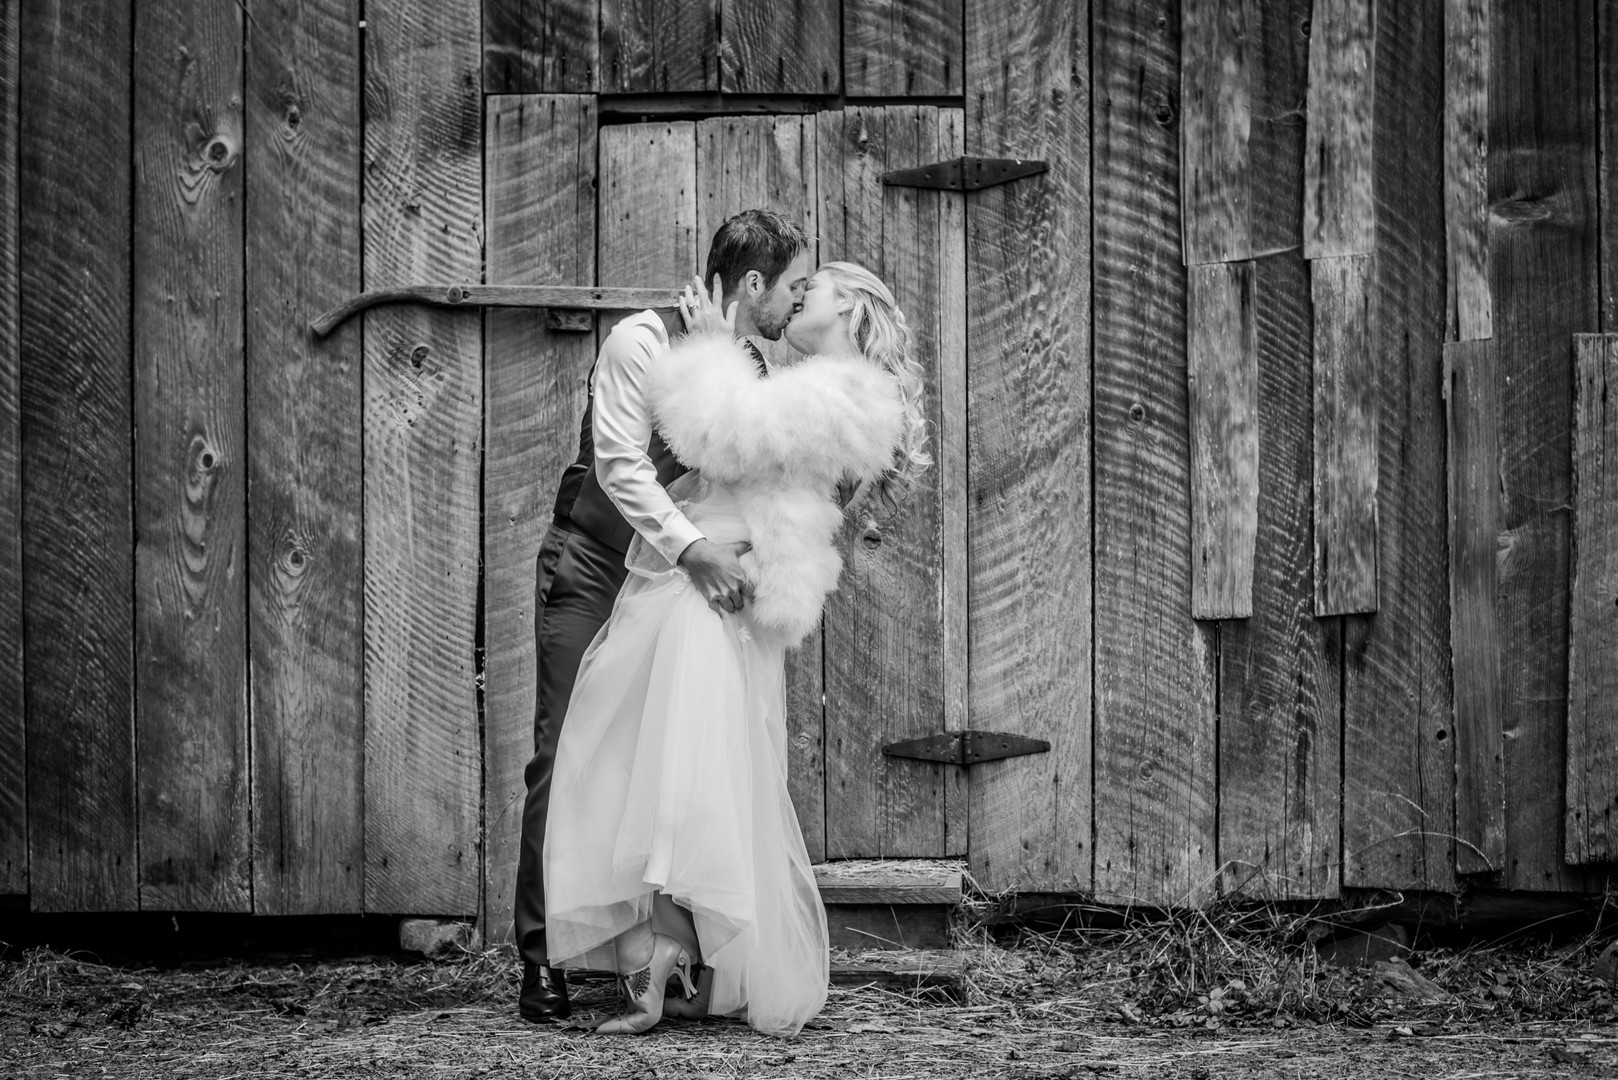 Bride and groom with barn